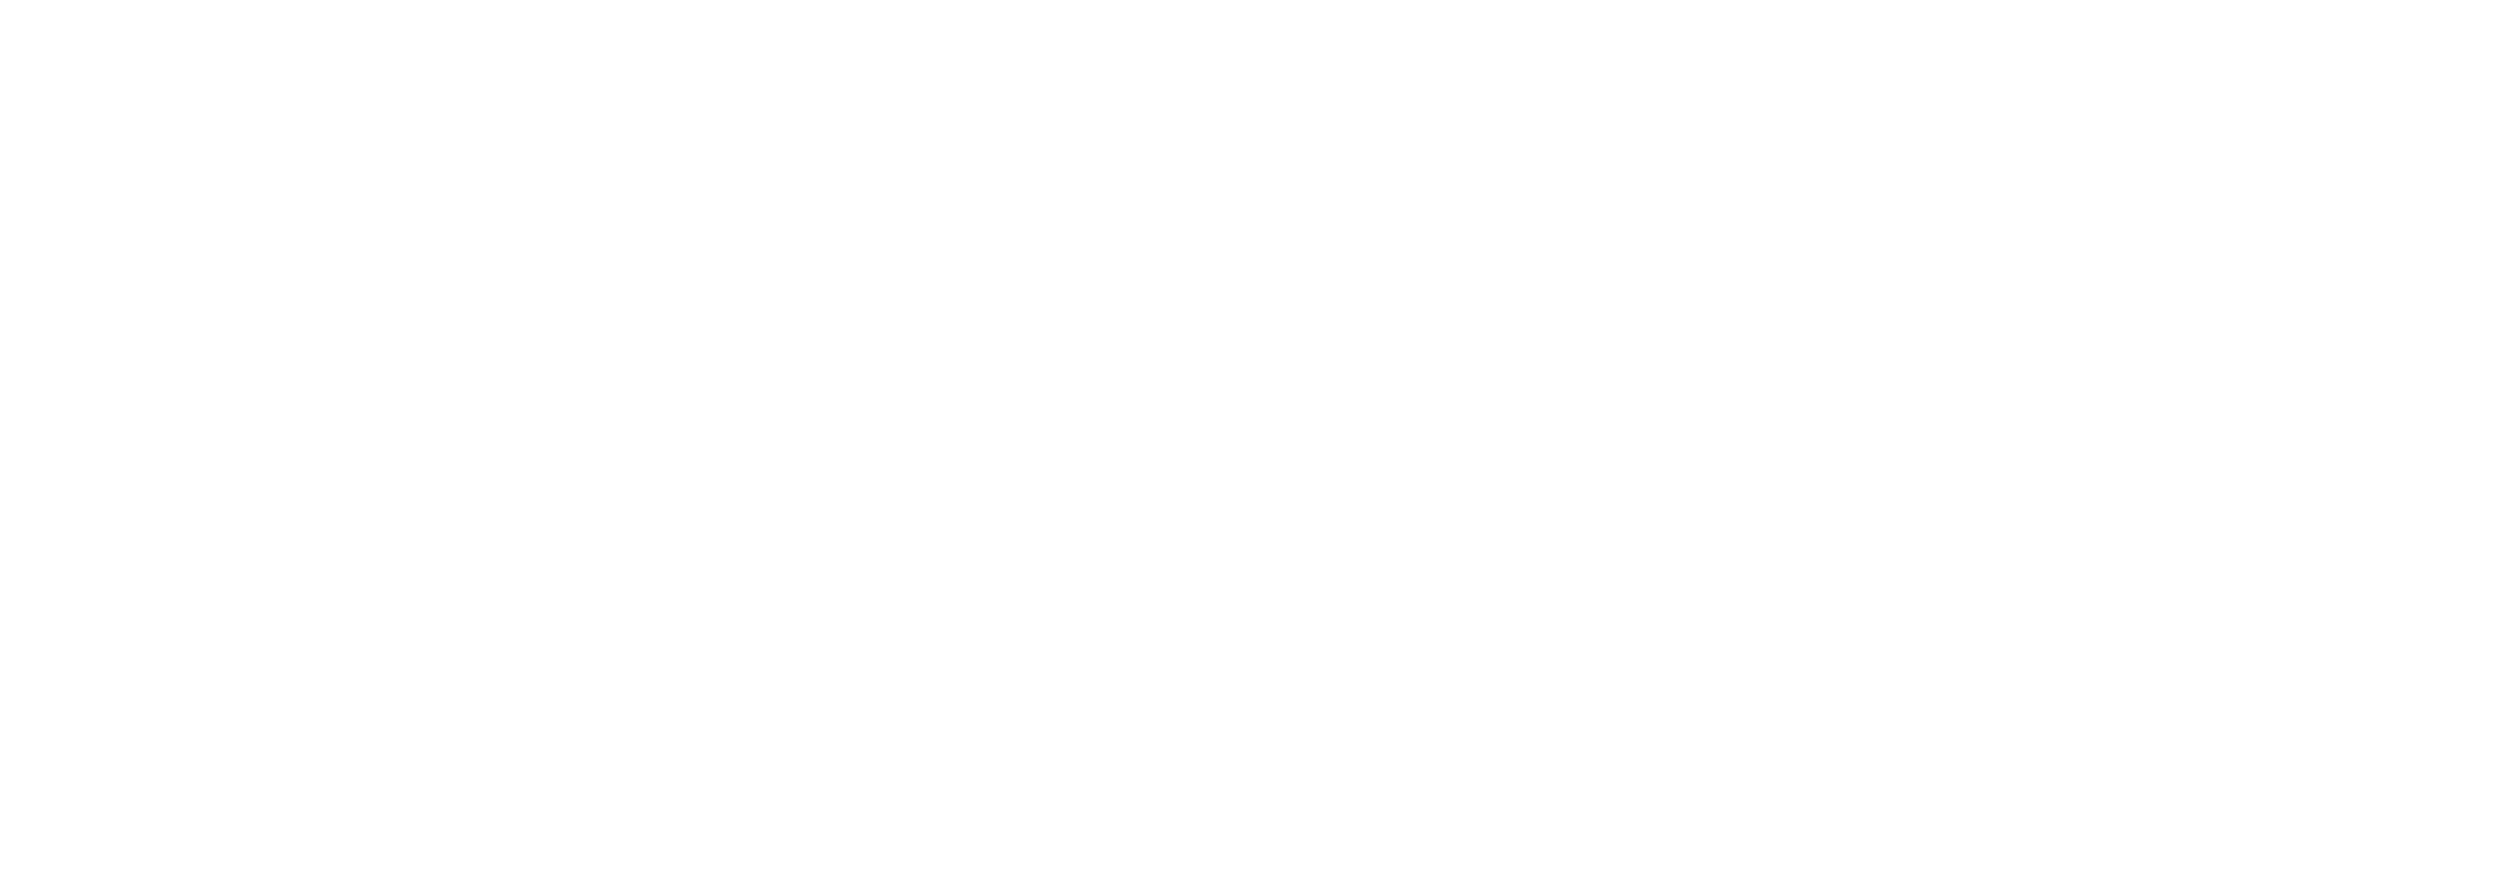 uparrow_white-01.png